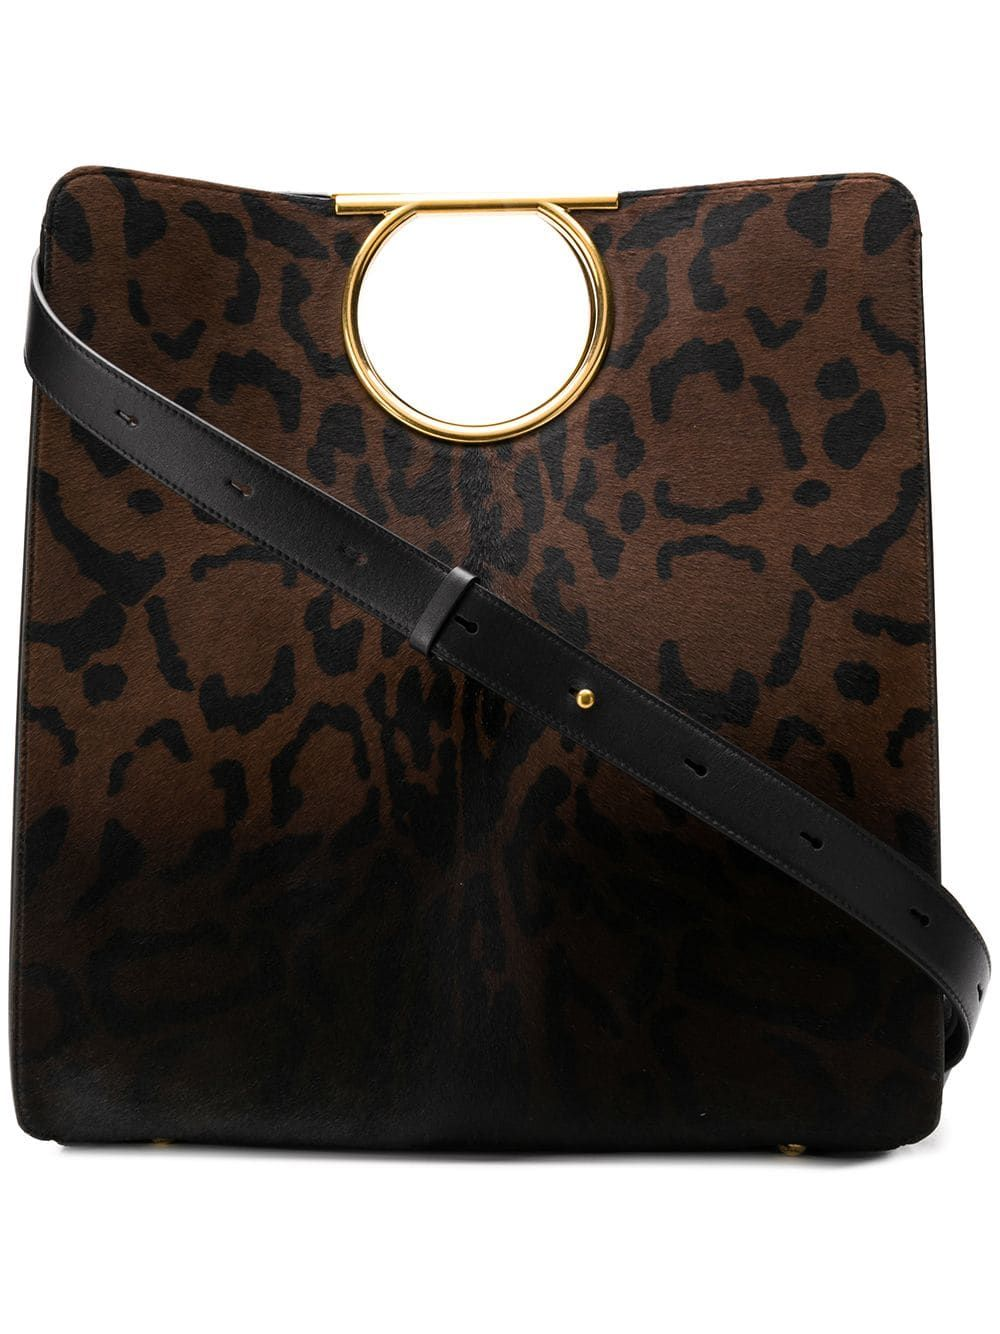 ece6dd003516 SALVATORE FERRAGAMO SALVATORE FERRAGAMO GANCINI LEOPARD PRINT TOTE - BROWN.   salvatoreferragamo  bags  shoulder bags  hand bags  leather  tote